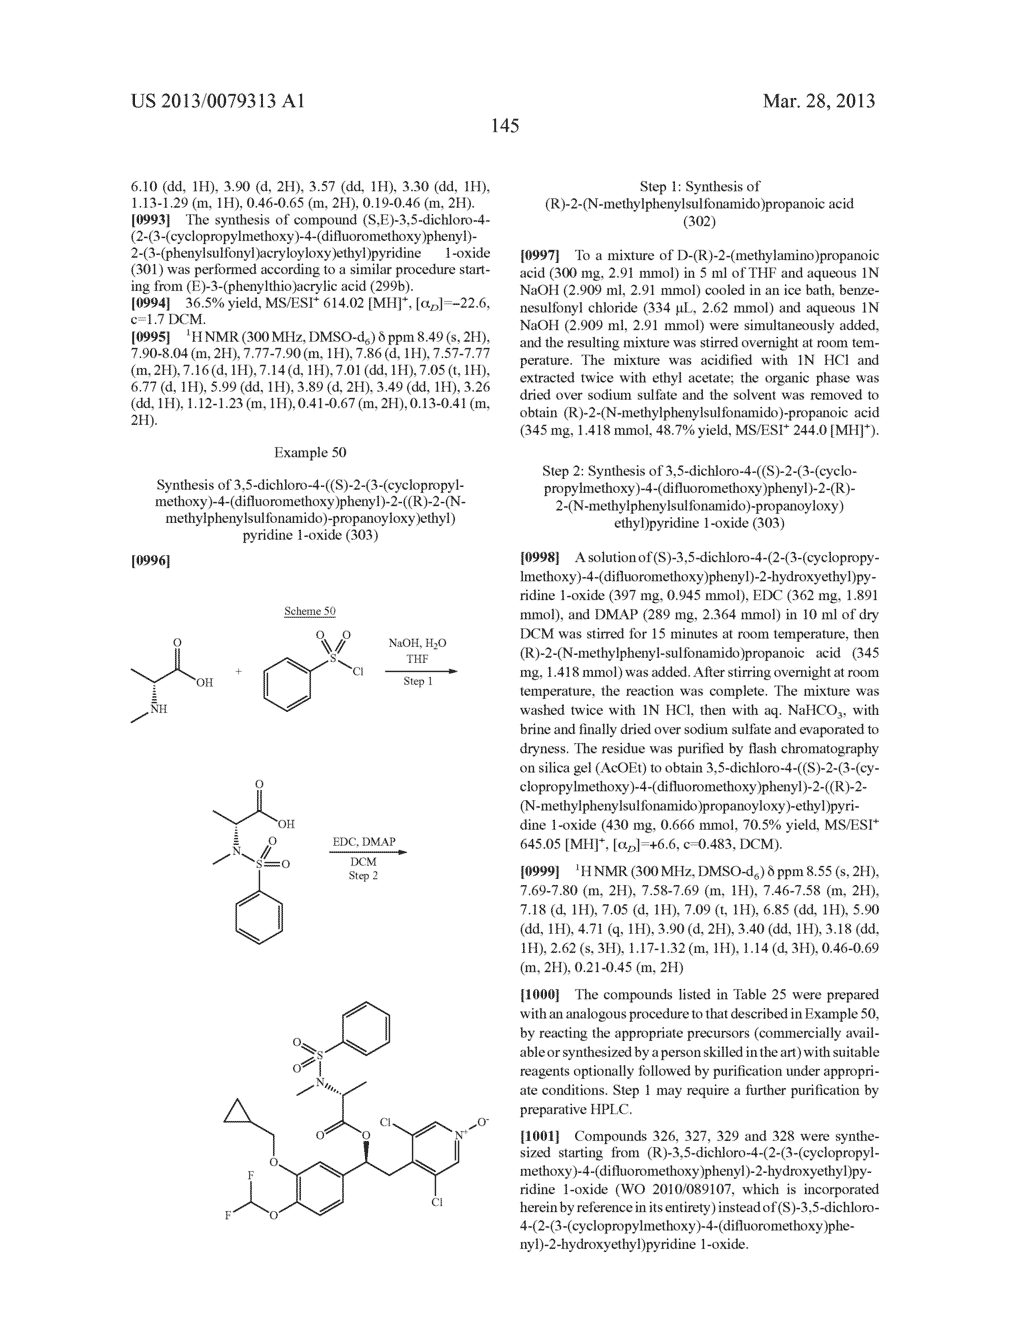 DERIVATIVES OF 1-PHENYL-2-PYRIDINYL ALKYL ALCOHOLS AS PHOSPHODIESTERASE     INHIBITORS - diagram, schematic, and image 146